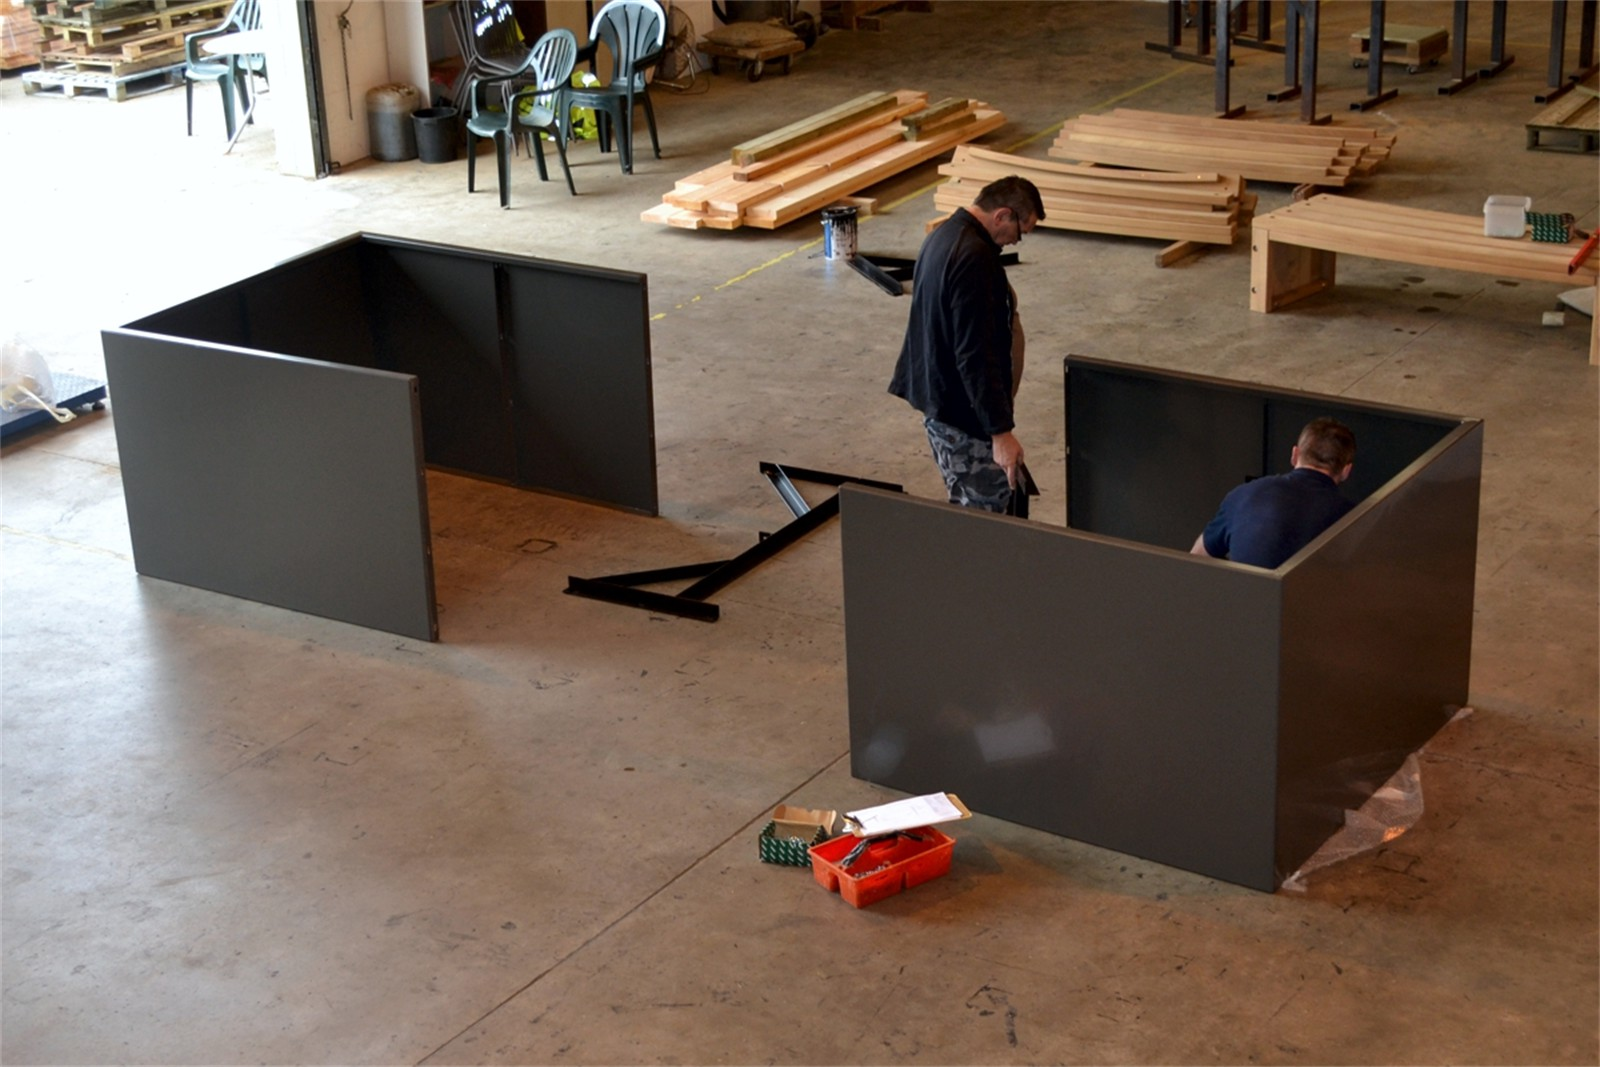 c121v04 - Stratum planter walling sections in manufacture